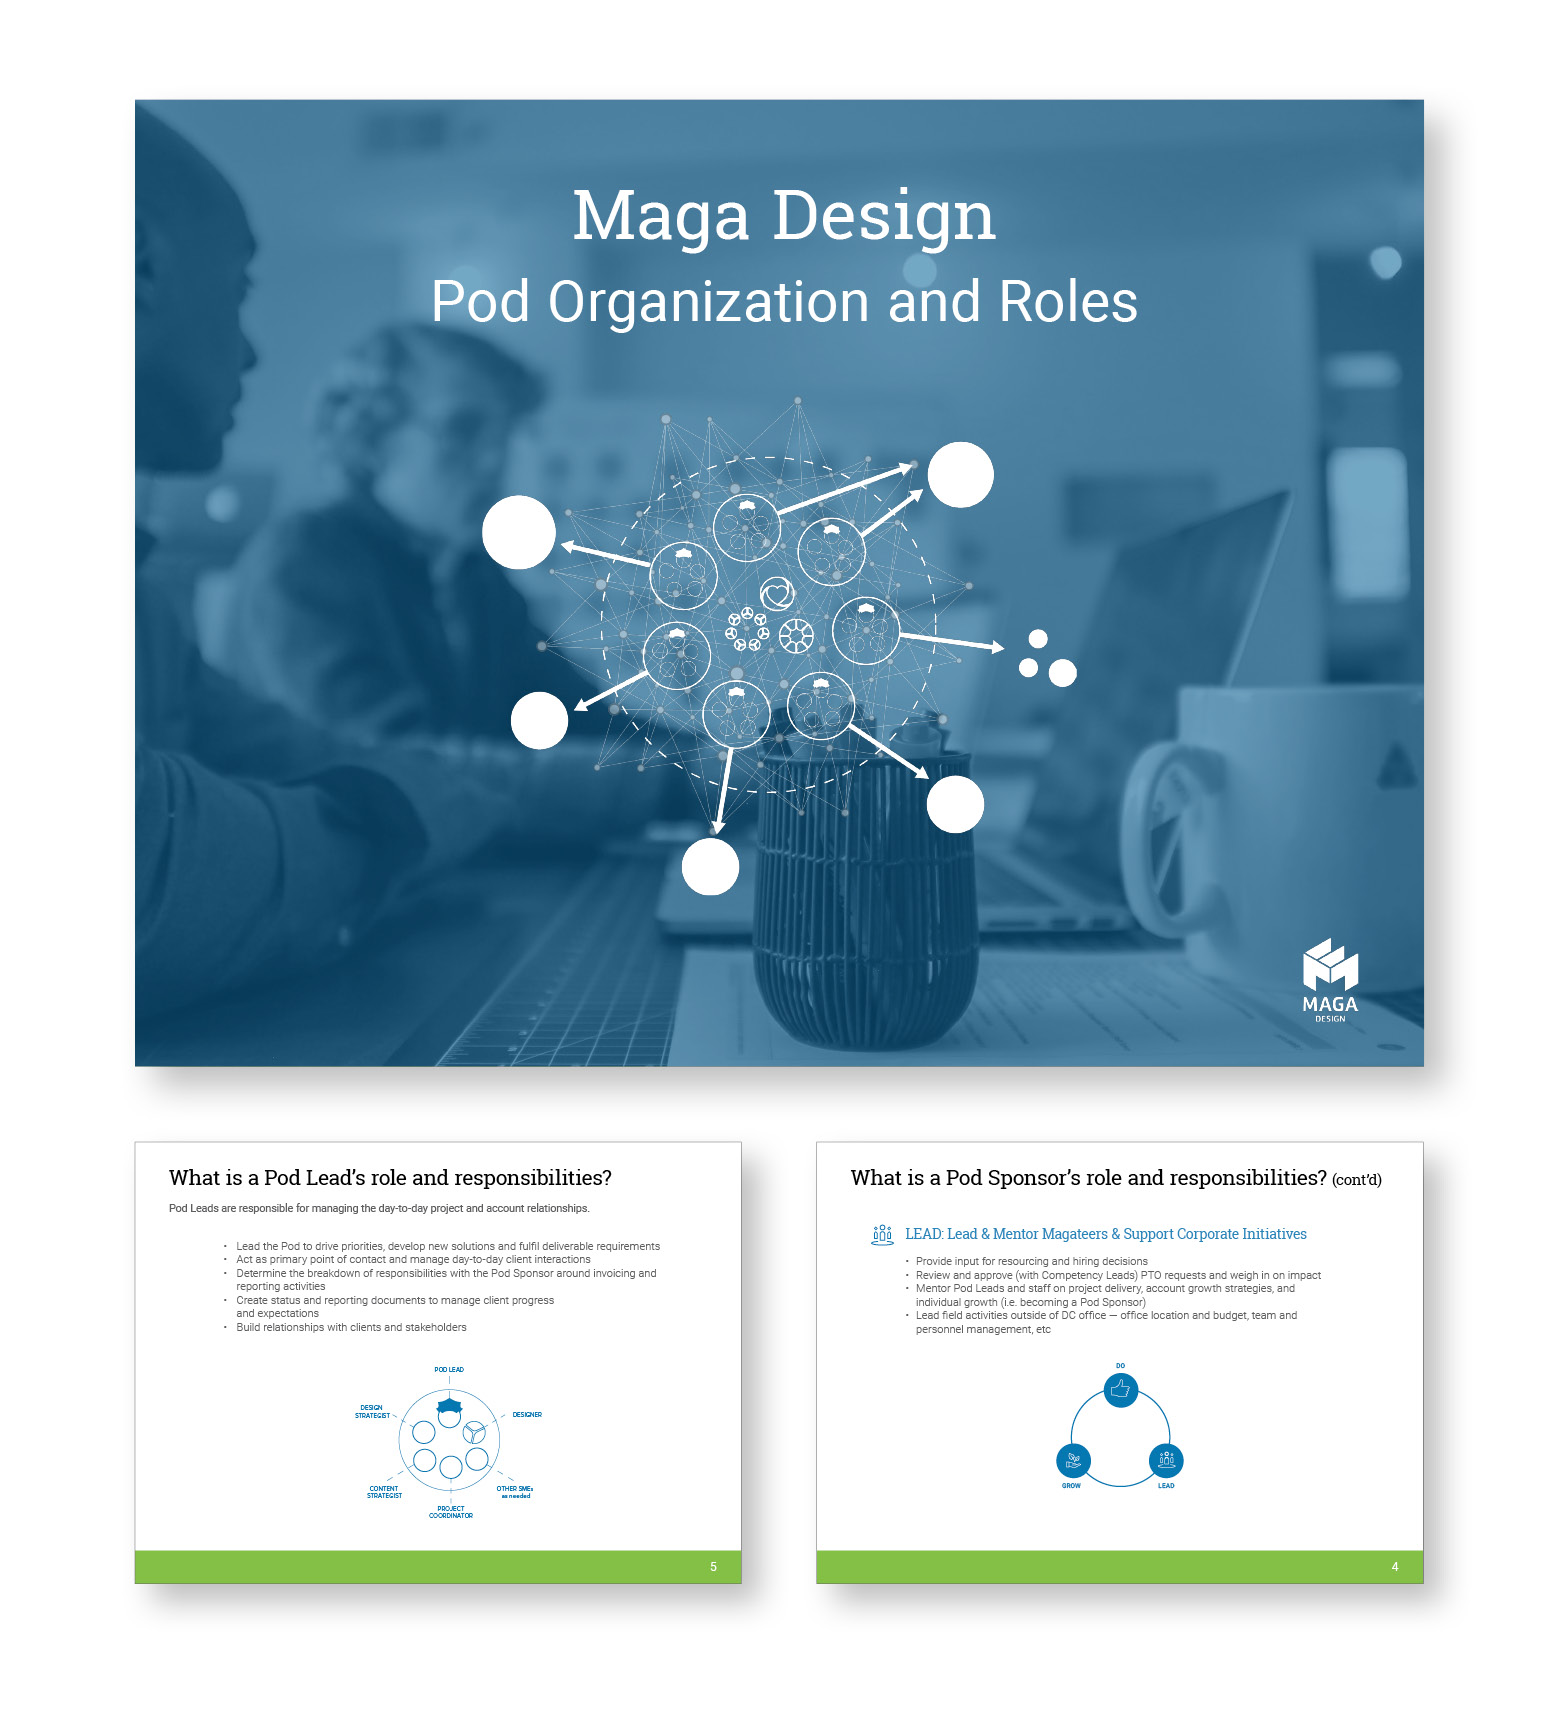 - To go along with the new, playful branding, we revamped Maga Design's internal presentations. The new presentations relied more heavily on imagery and graphics to supplement the content that was being presented.